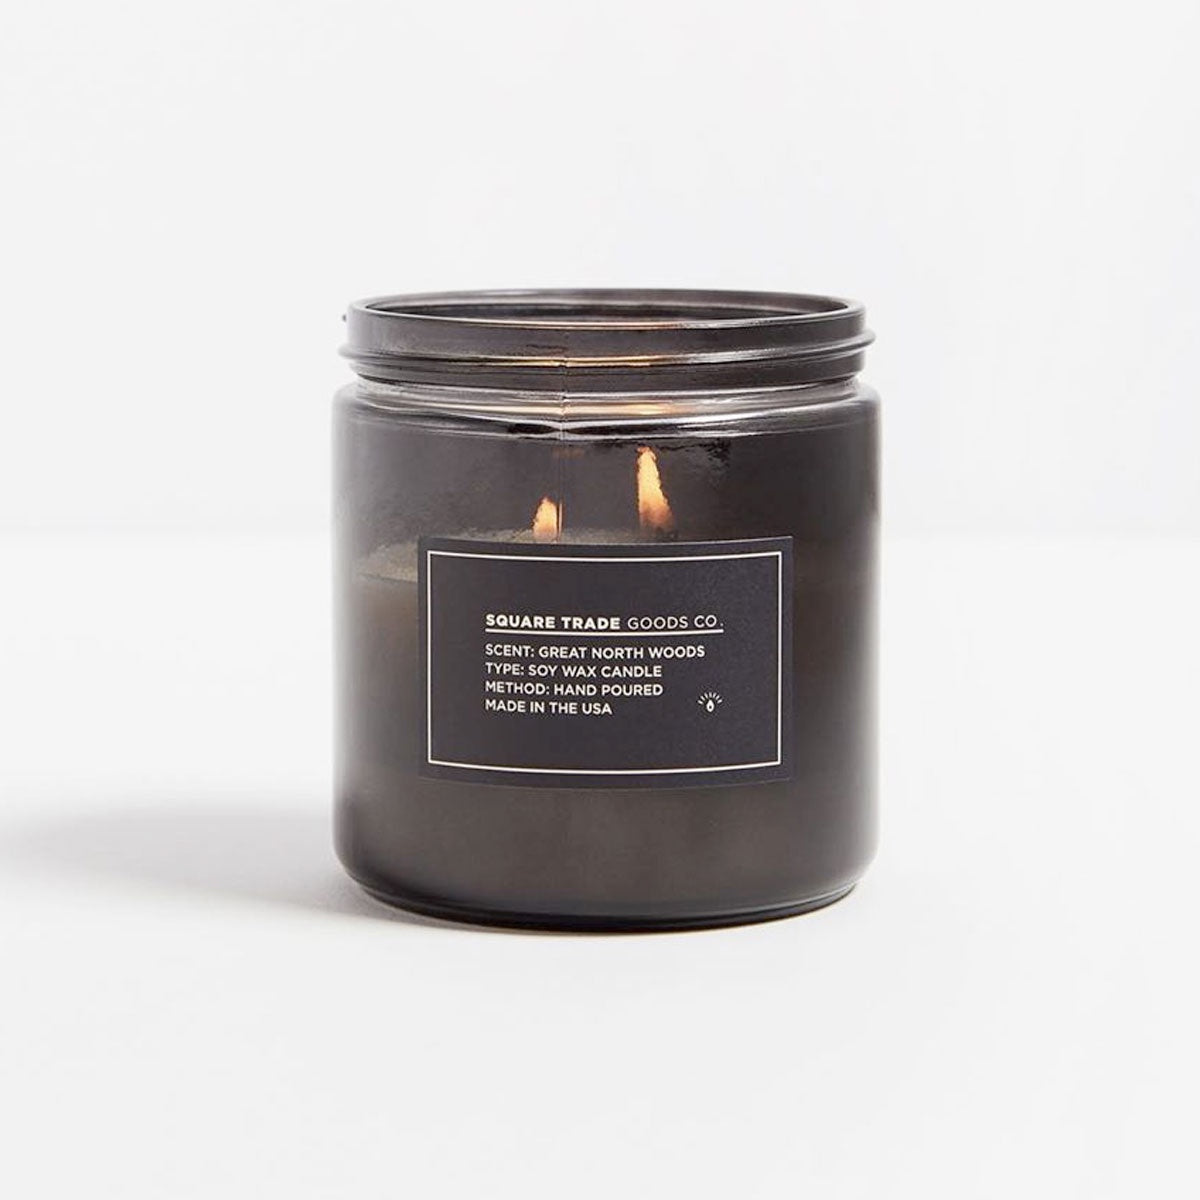 Square Trade Goods Co. Great North Woods Double Wick Candle